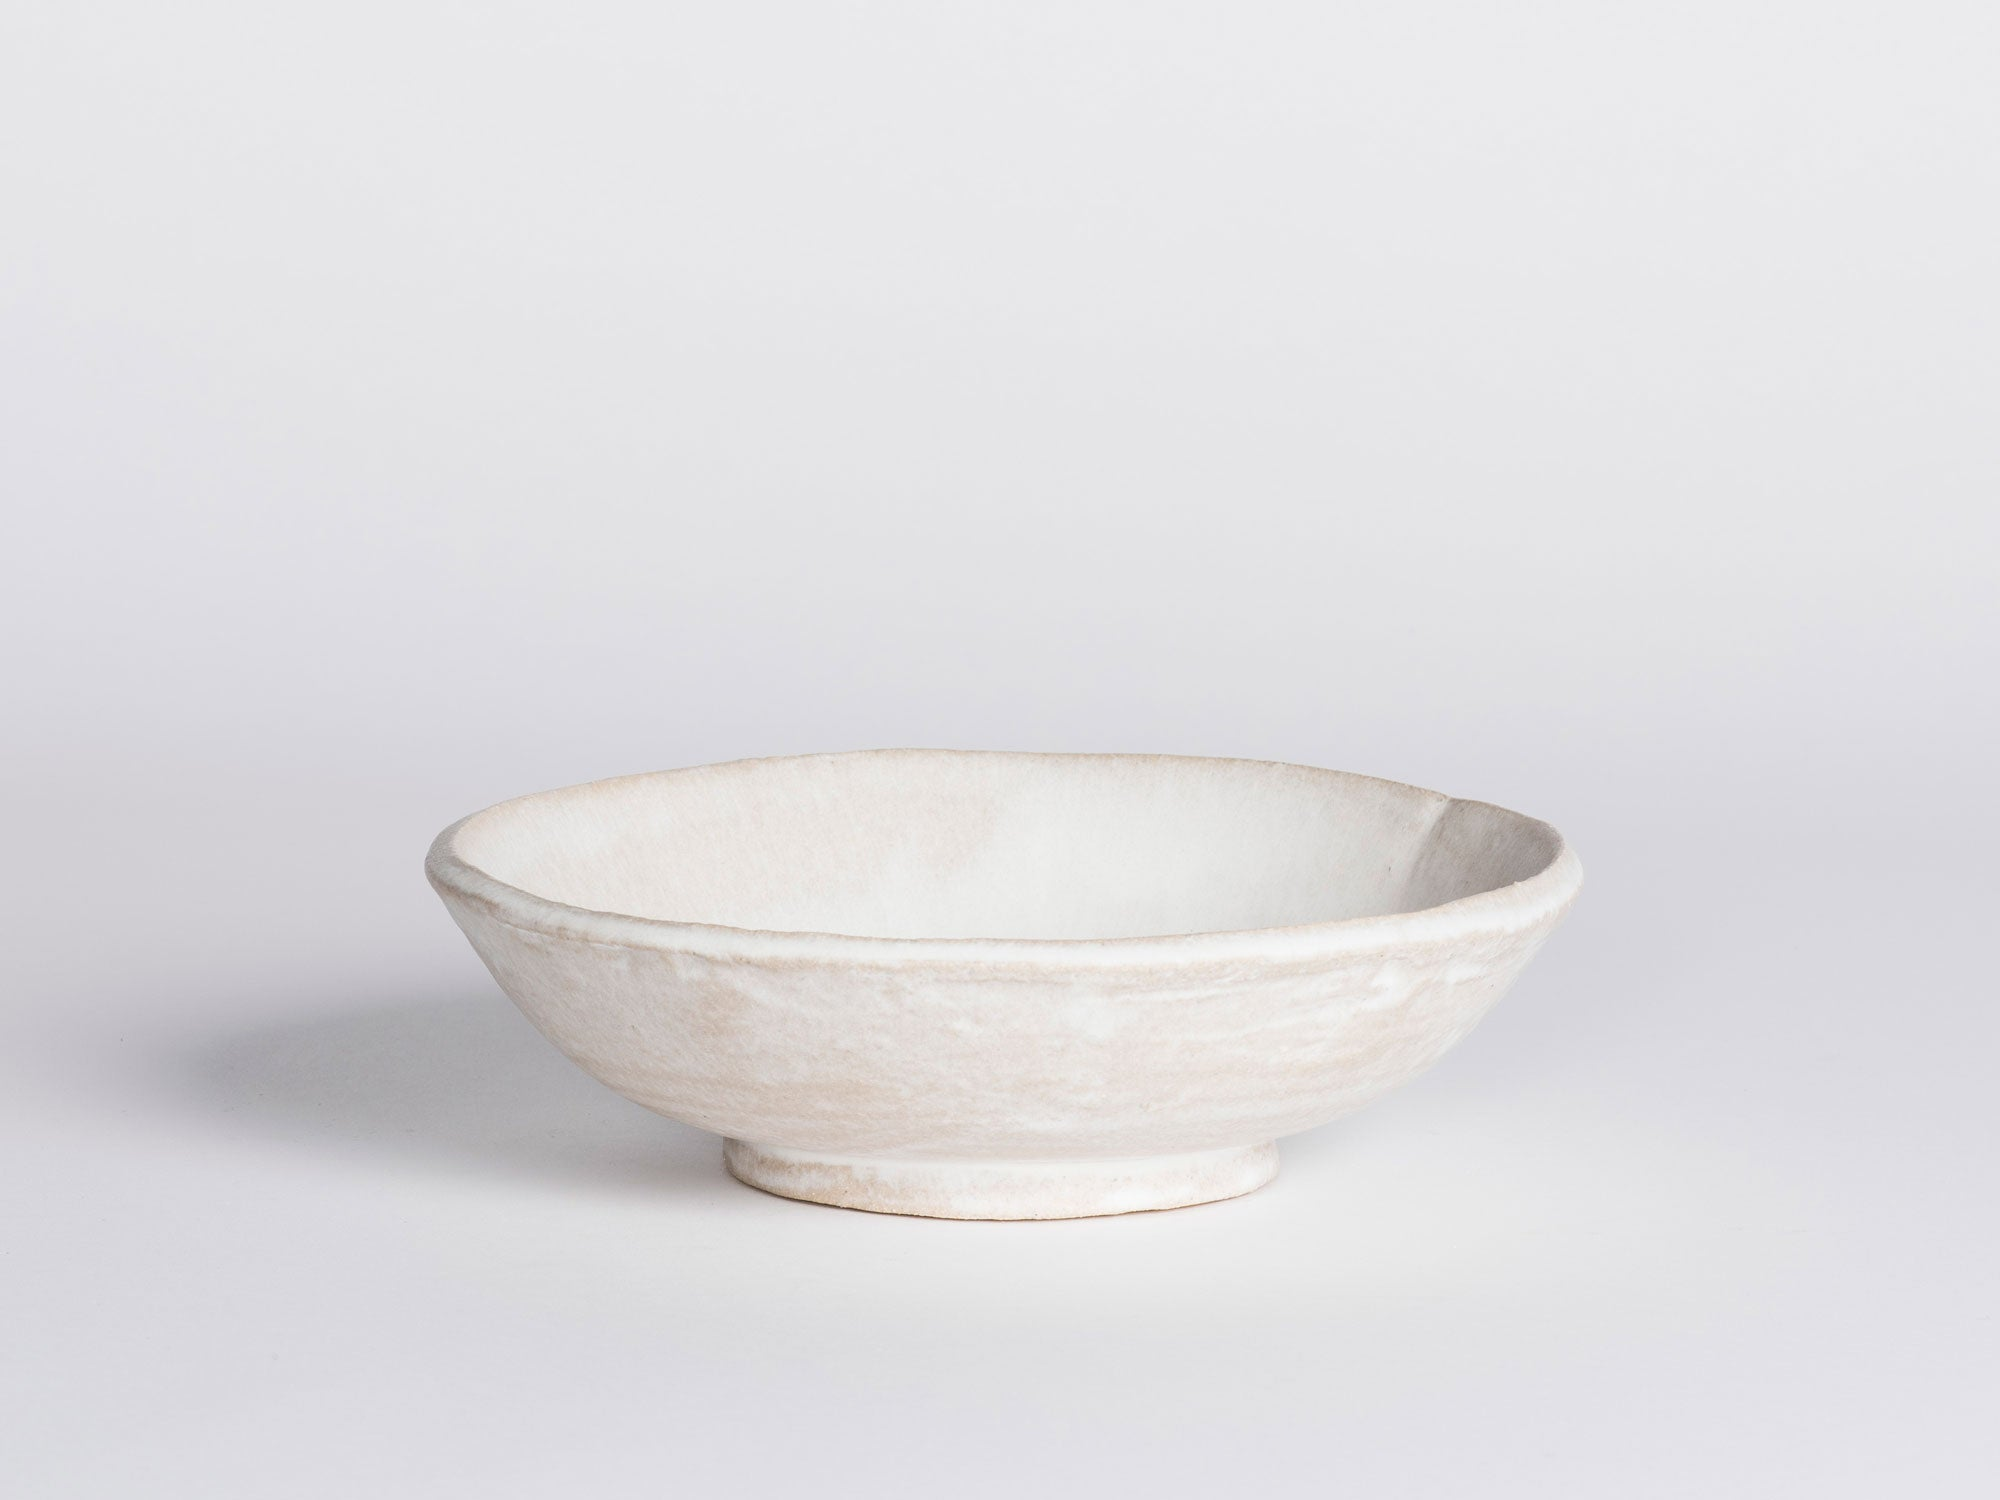 Morgan Peck Bowl - Frosted White